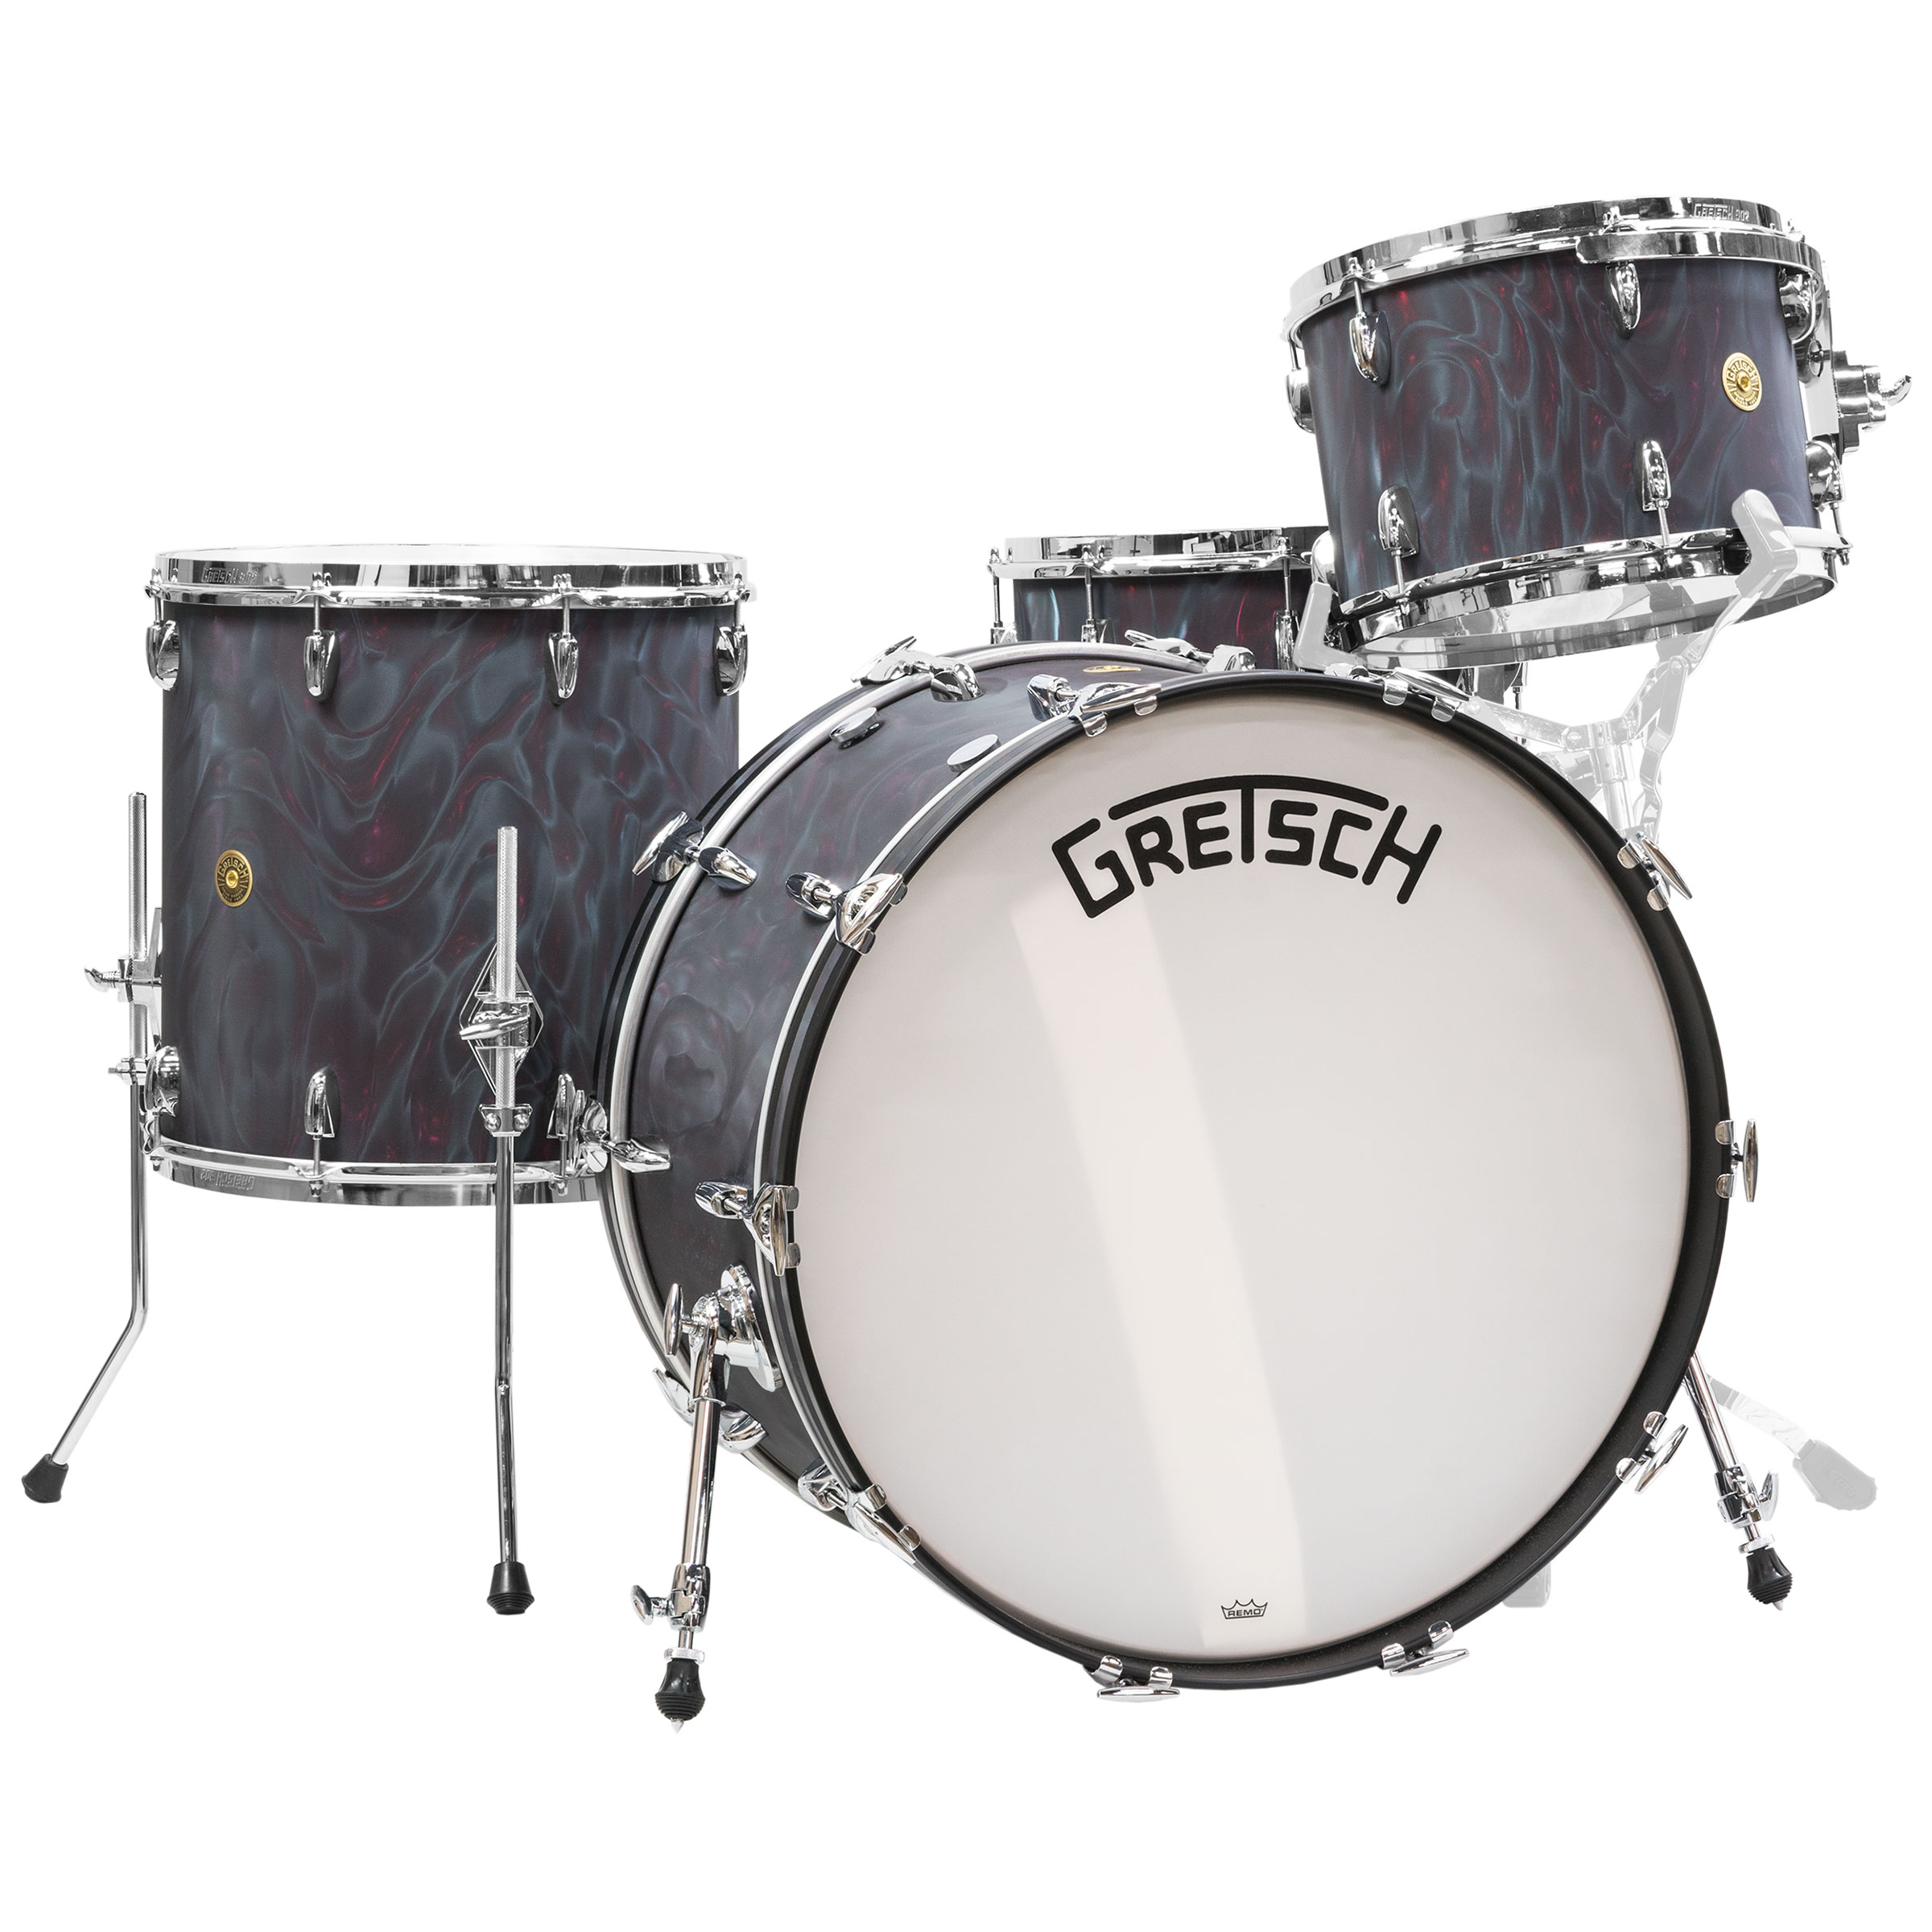 "Gretsch Broadkaster 4-Piece Shell Pack (24"" Bass, 13/16"" Toms, 6.5 x 14"" Snare) in Black Satin Flame"